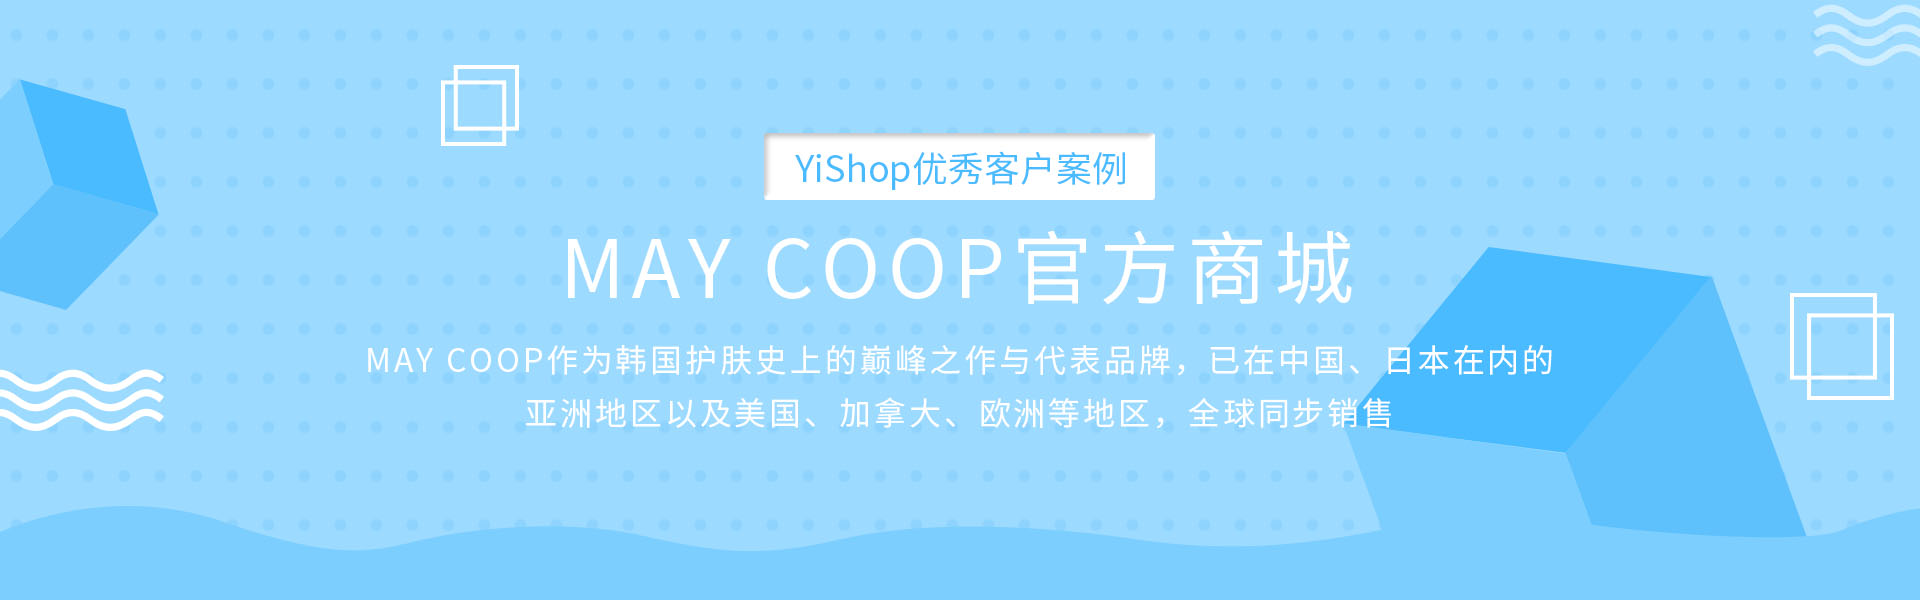 MAY COOP的Banner图